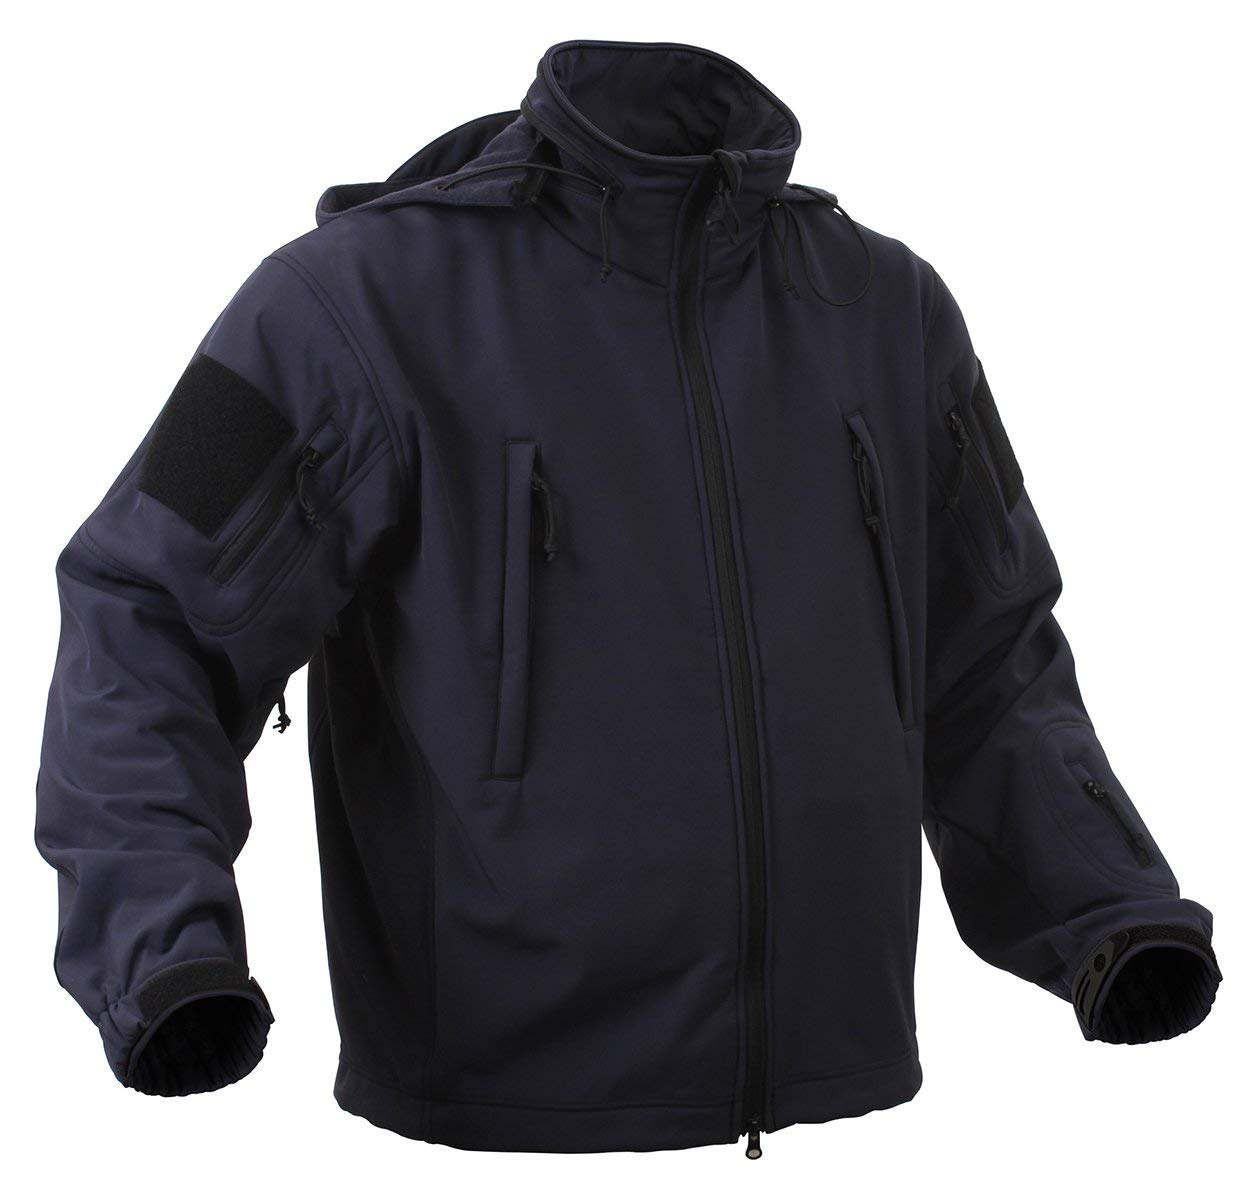 Rothco Special Ops Soft Shell Jacket - Midnight Blue - Large - 9511-BLUE-L